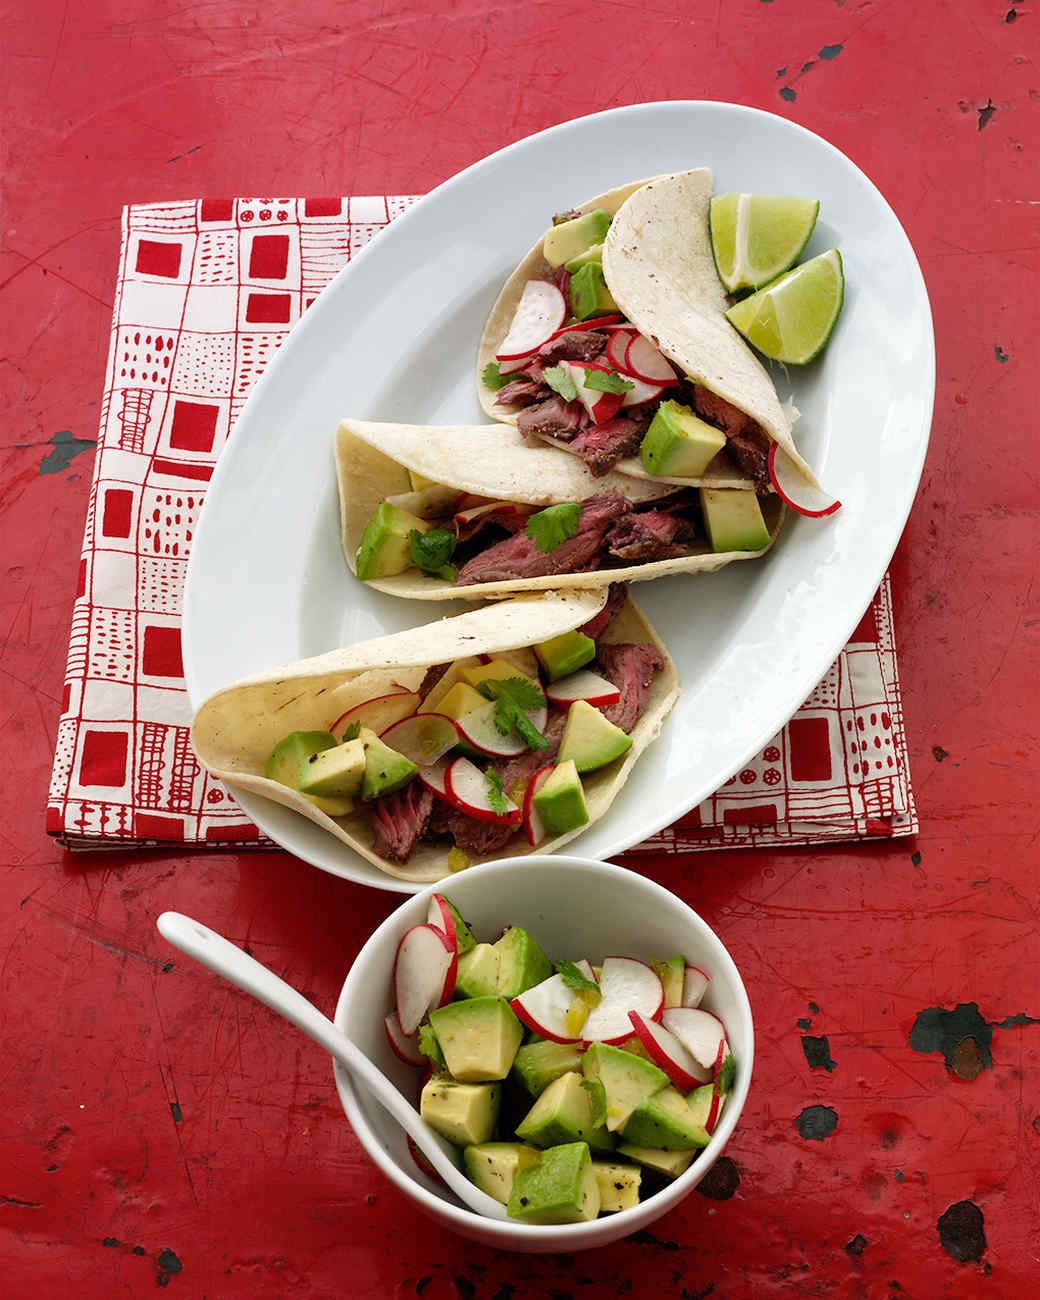 Beef Tacos with Radish and Avocado Salsa